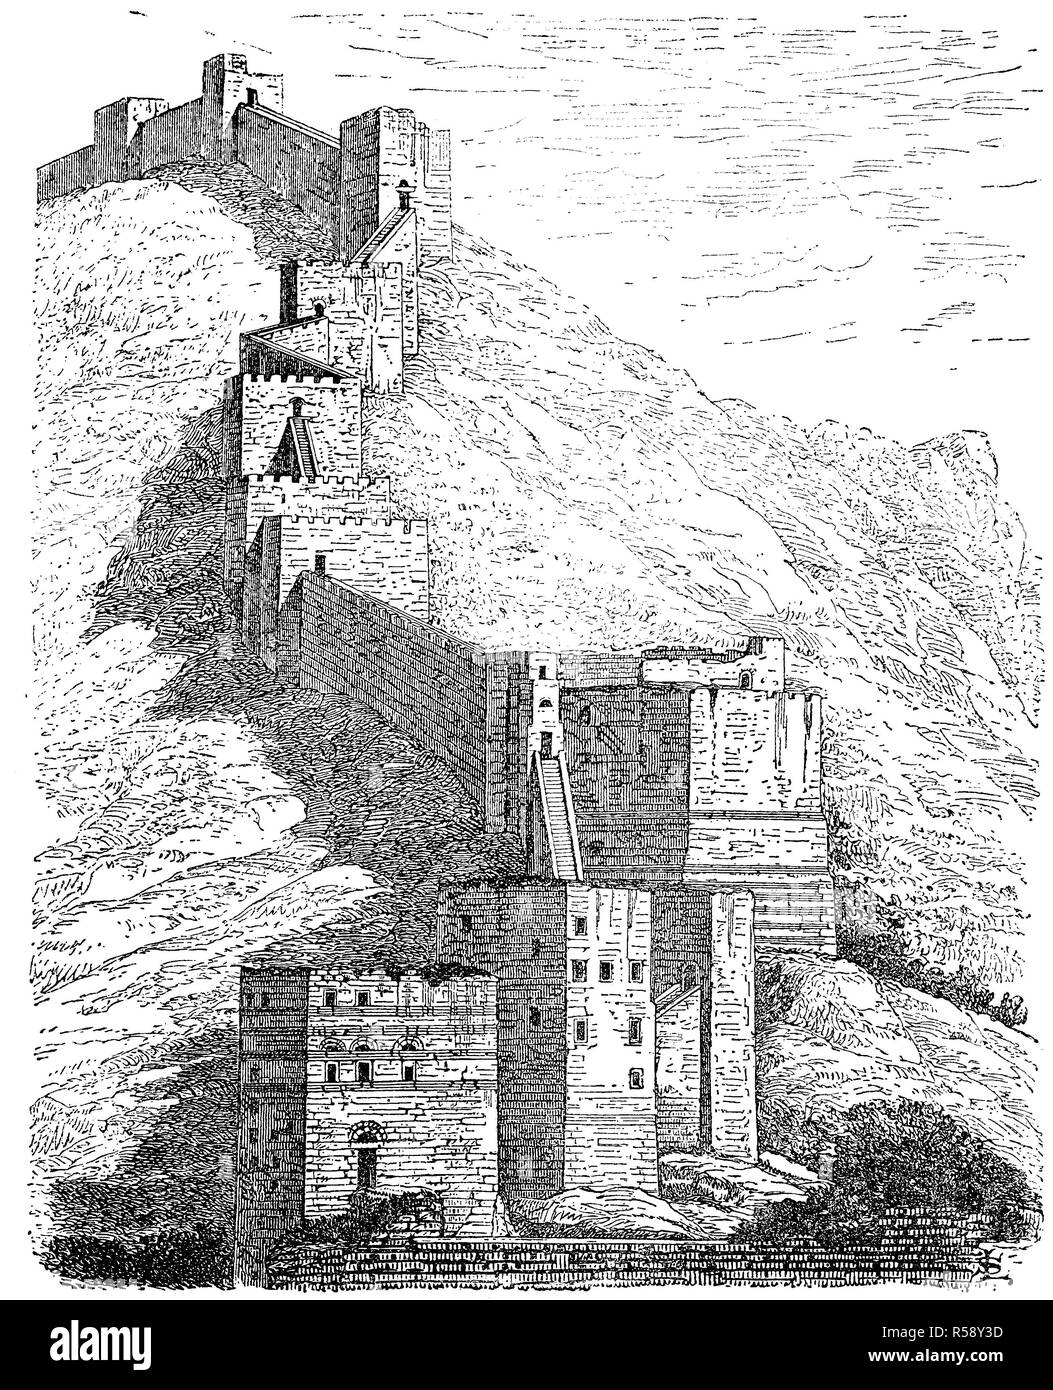 Digital improved reproduction, the fortress walls of Antiochia, today Syria, die Westseite der Festungsmauer von Antiochia, heute Syrien, original print from th 19th century - Stock Image